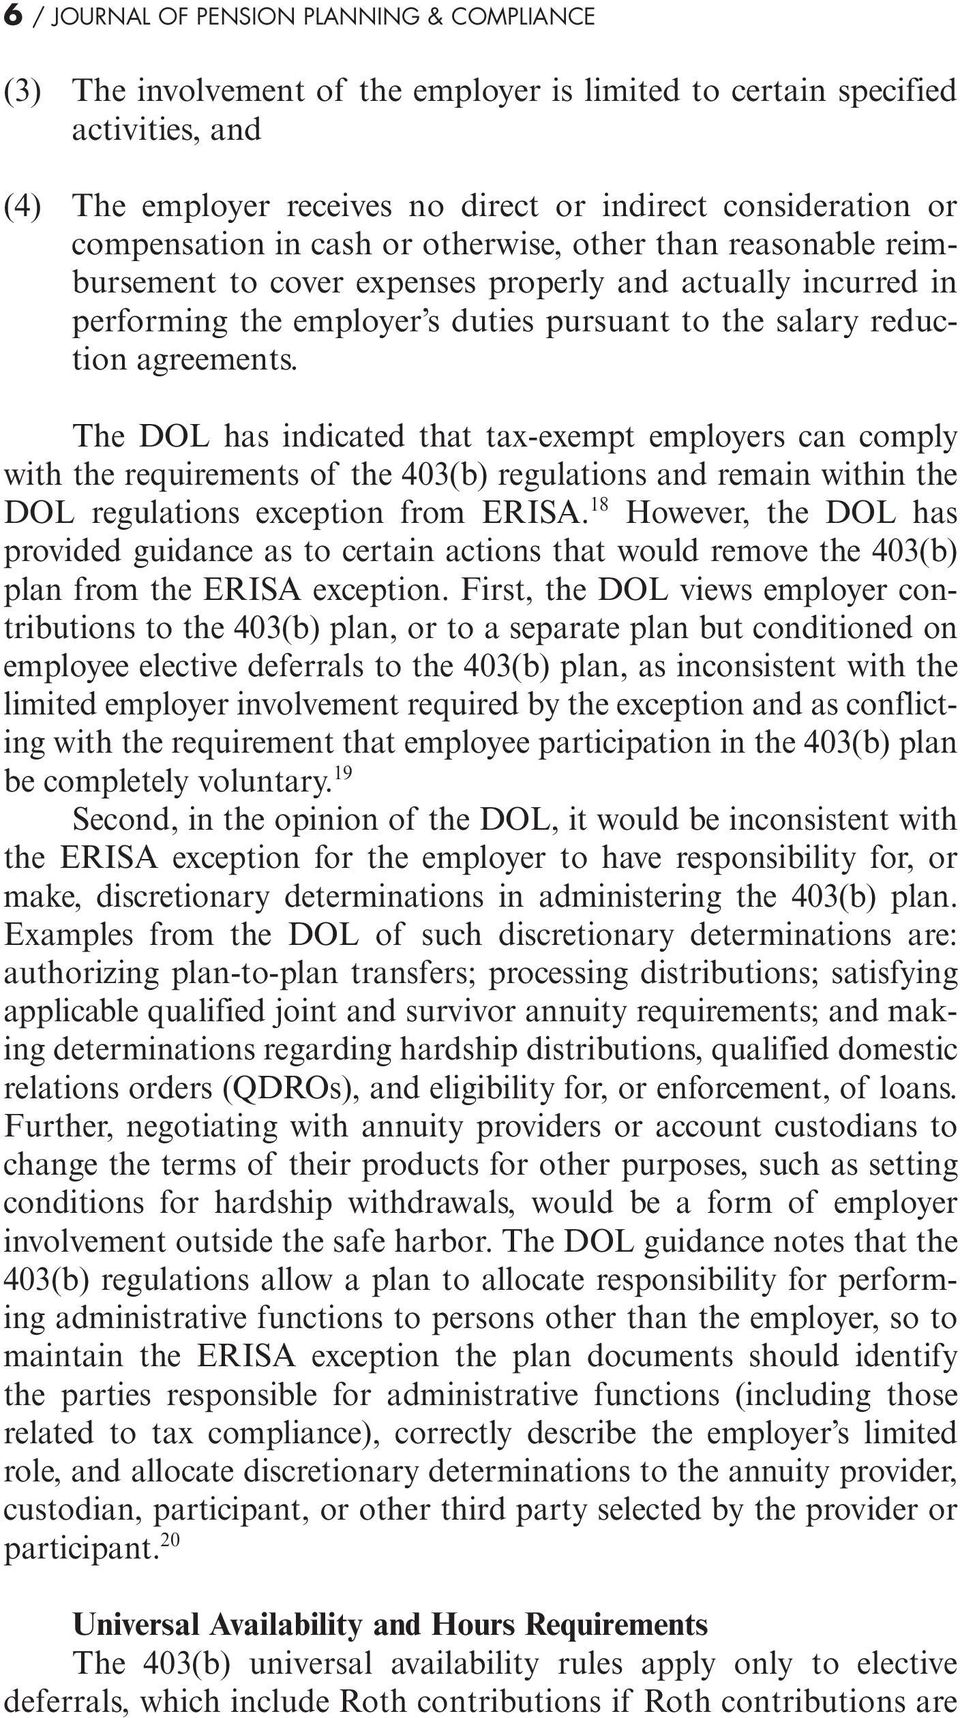 The DOL has indicated that tax-exempt employers can comply with the requirements of the 403(b) regulations and remain within the DOL regulations exception from ERISA.